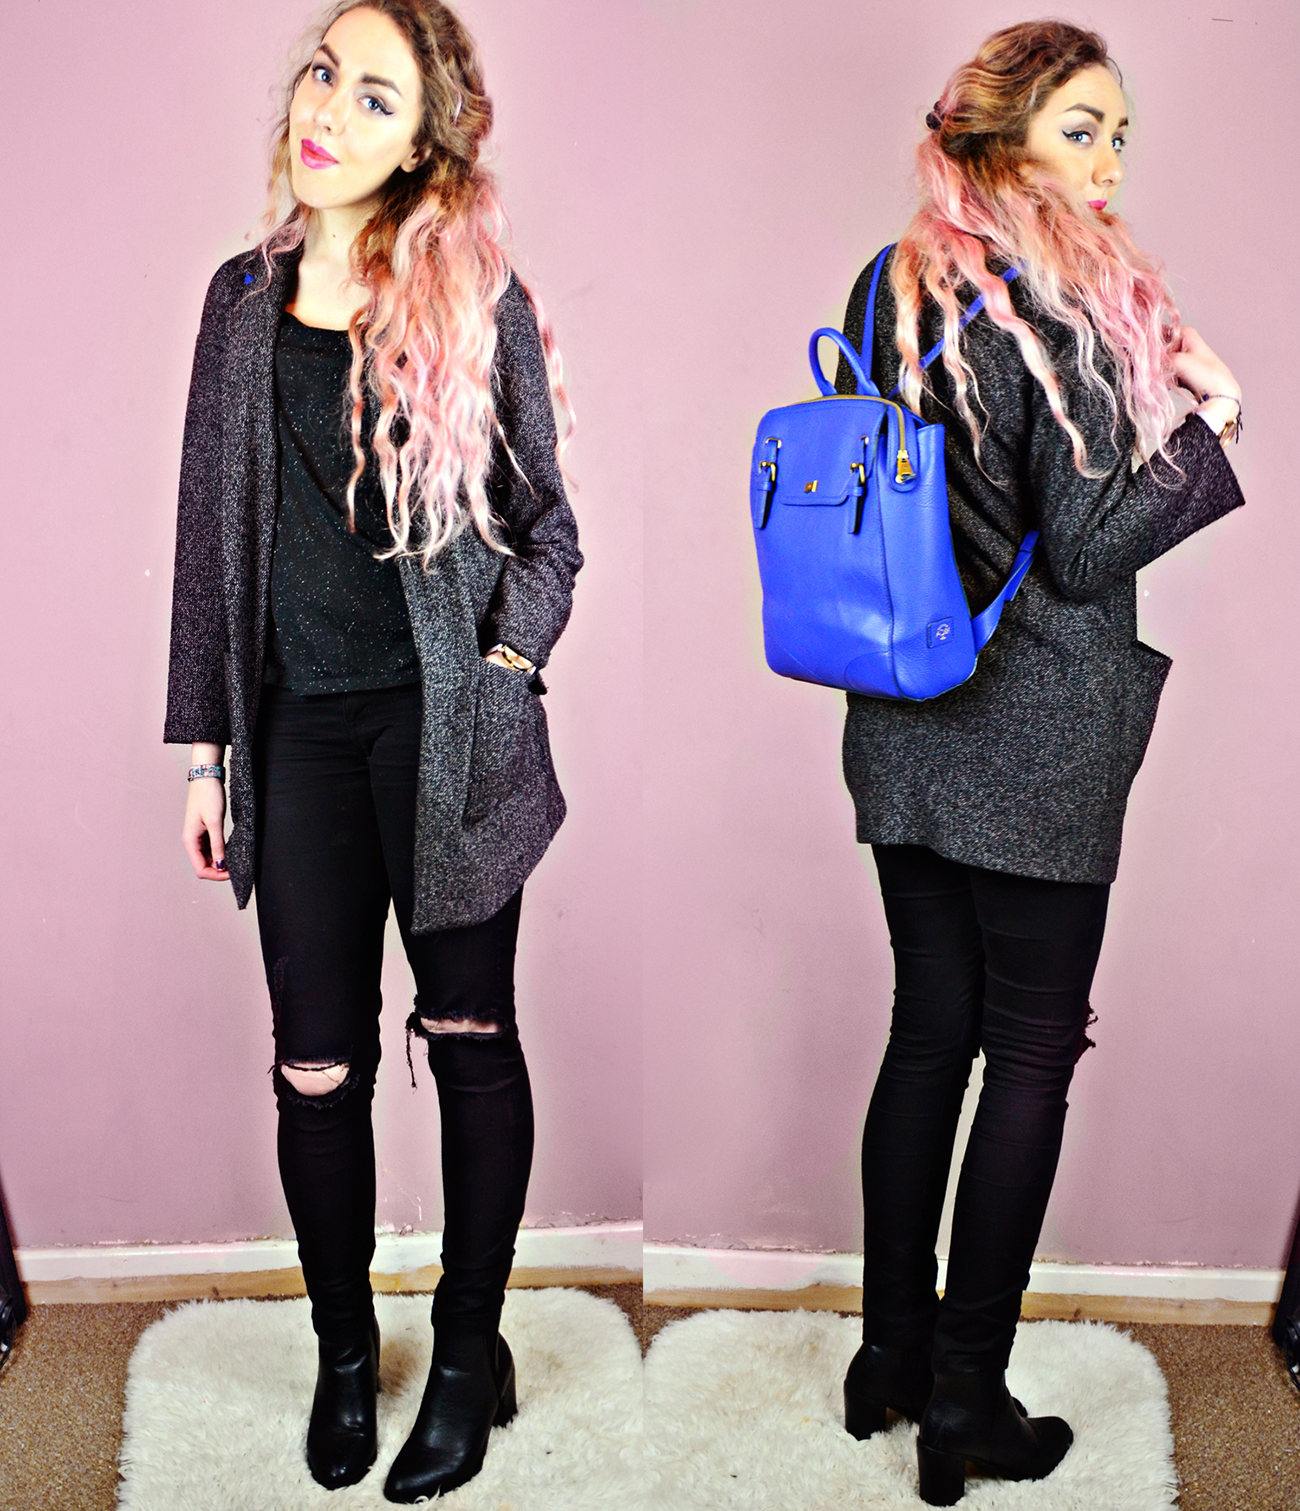 Backpack*// Nica Handbags Jacket// River Island (old) (similar) Speckled Boyfriend Tee// New Look (similar) Ripped Jeans*// Quiz Pointed Boots*// Boohoo Stephi LaReine, Style Blogger pink hair